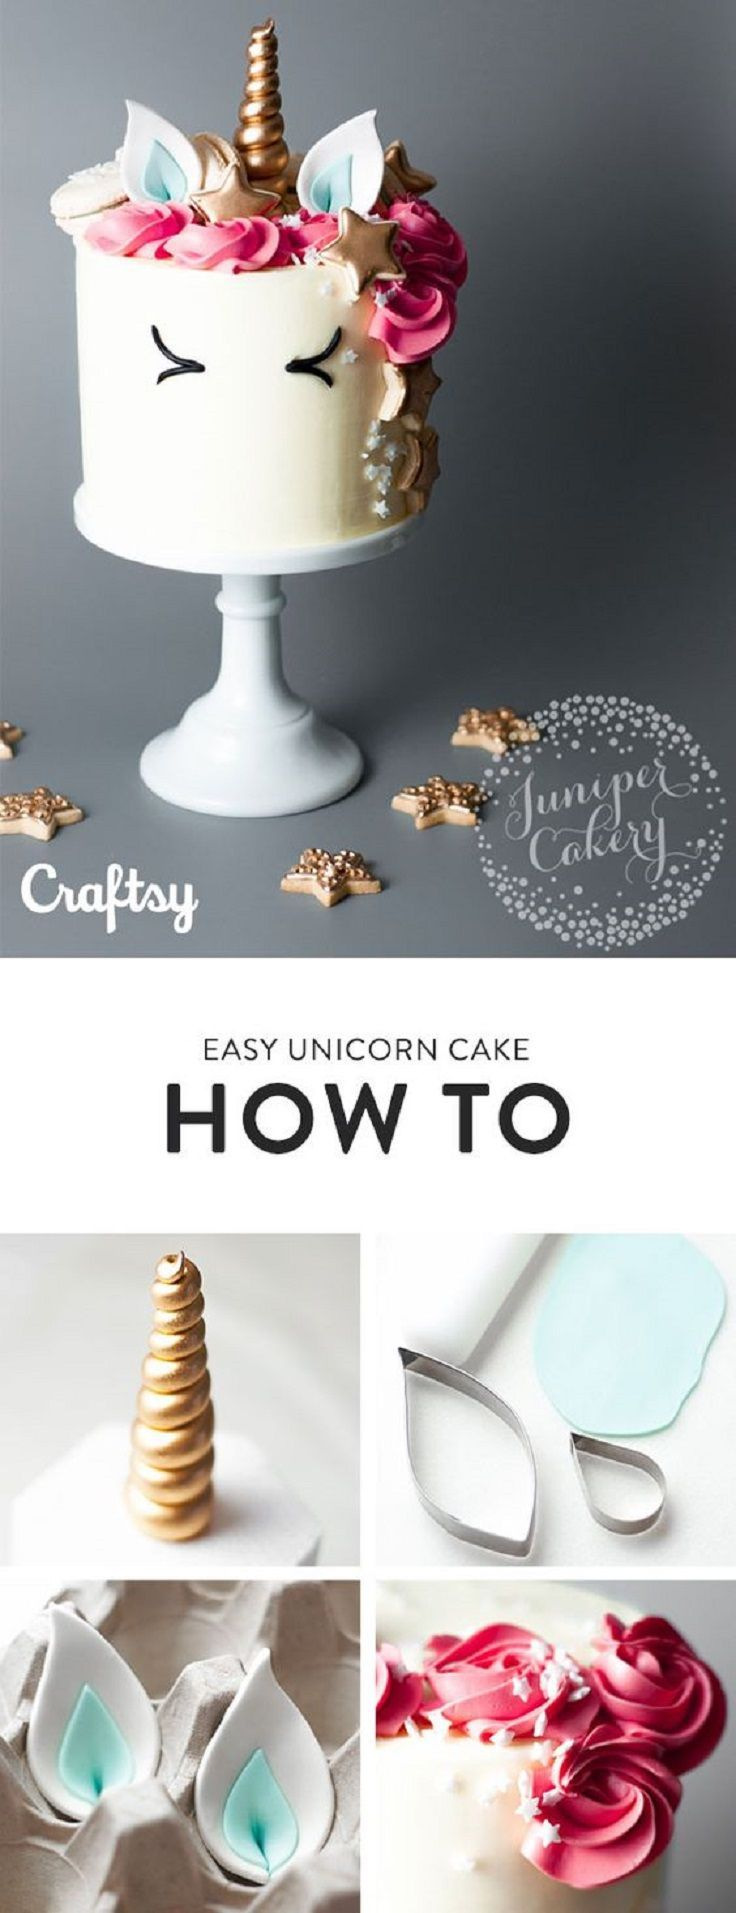 Cupcake Decorating Ideas Step By Step : Best 25+ Cake decorating tips ideas on Pinterest Cake ...